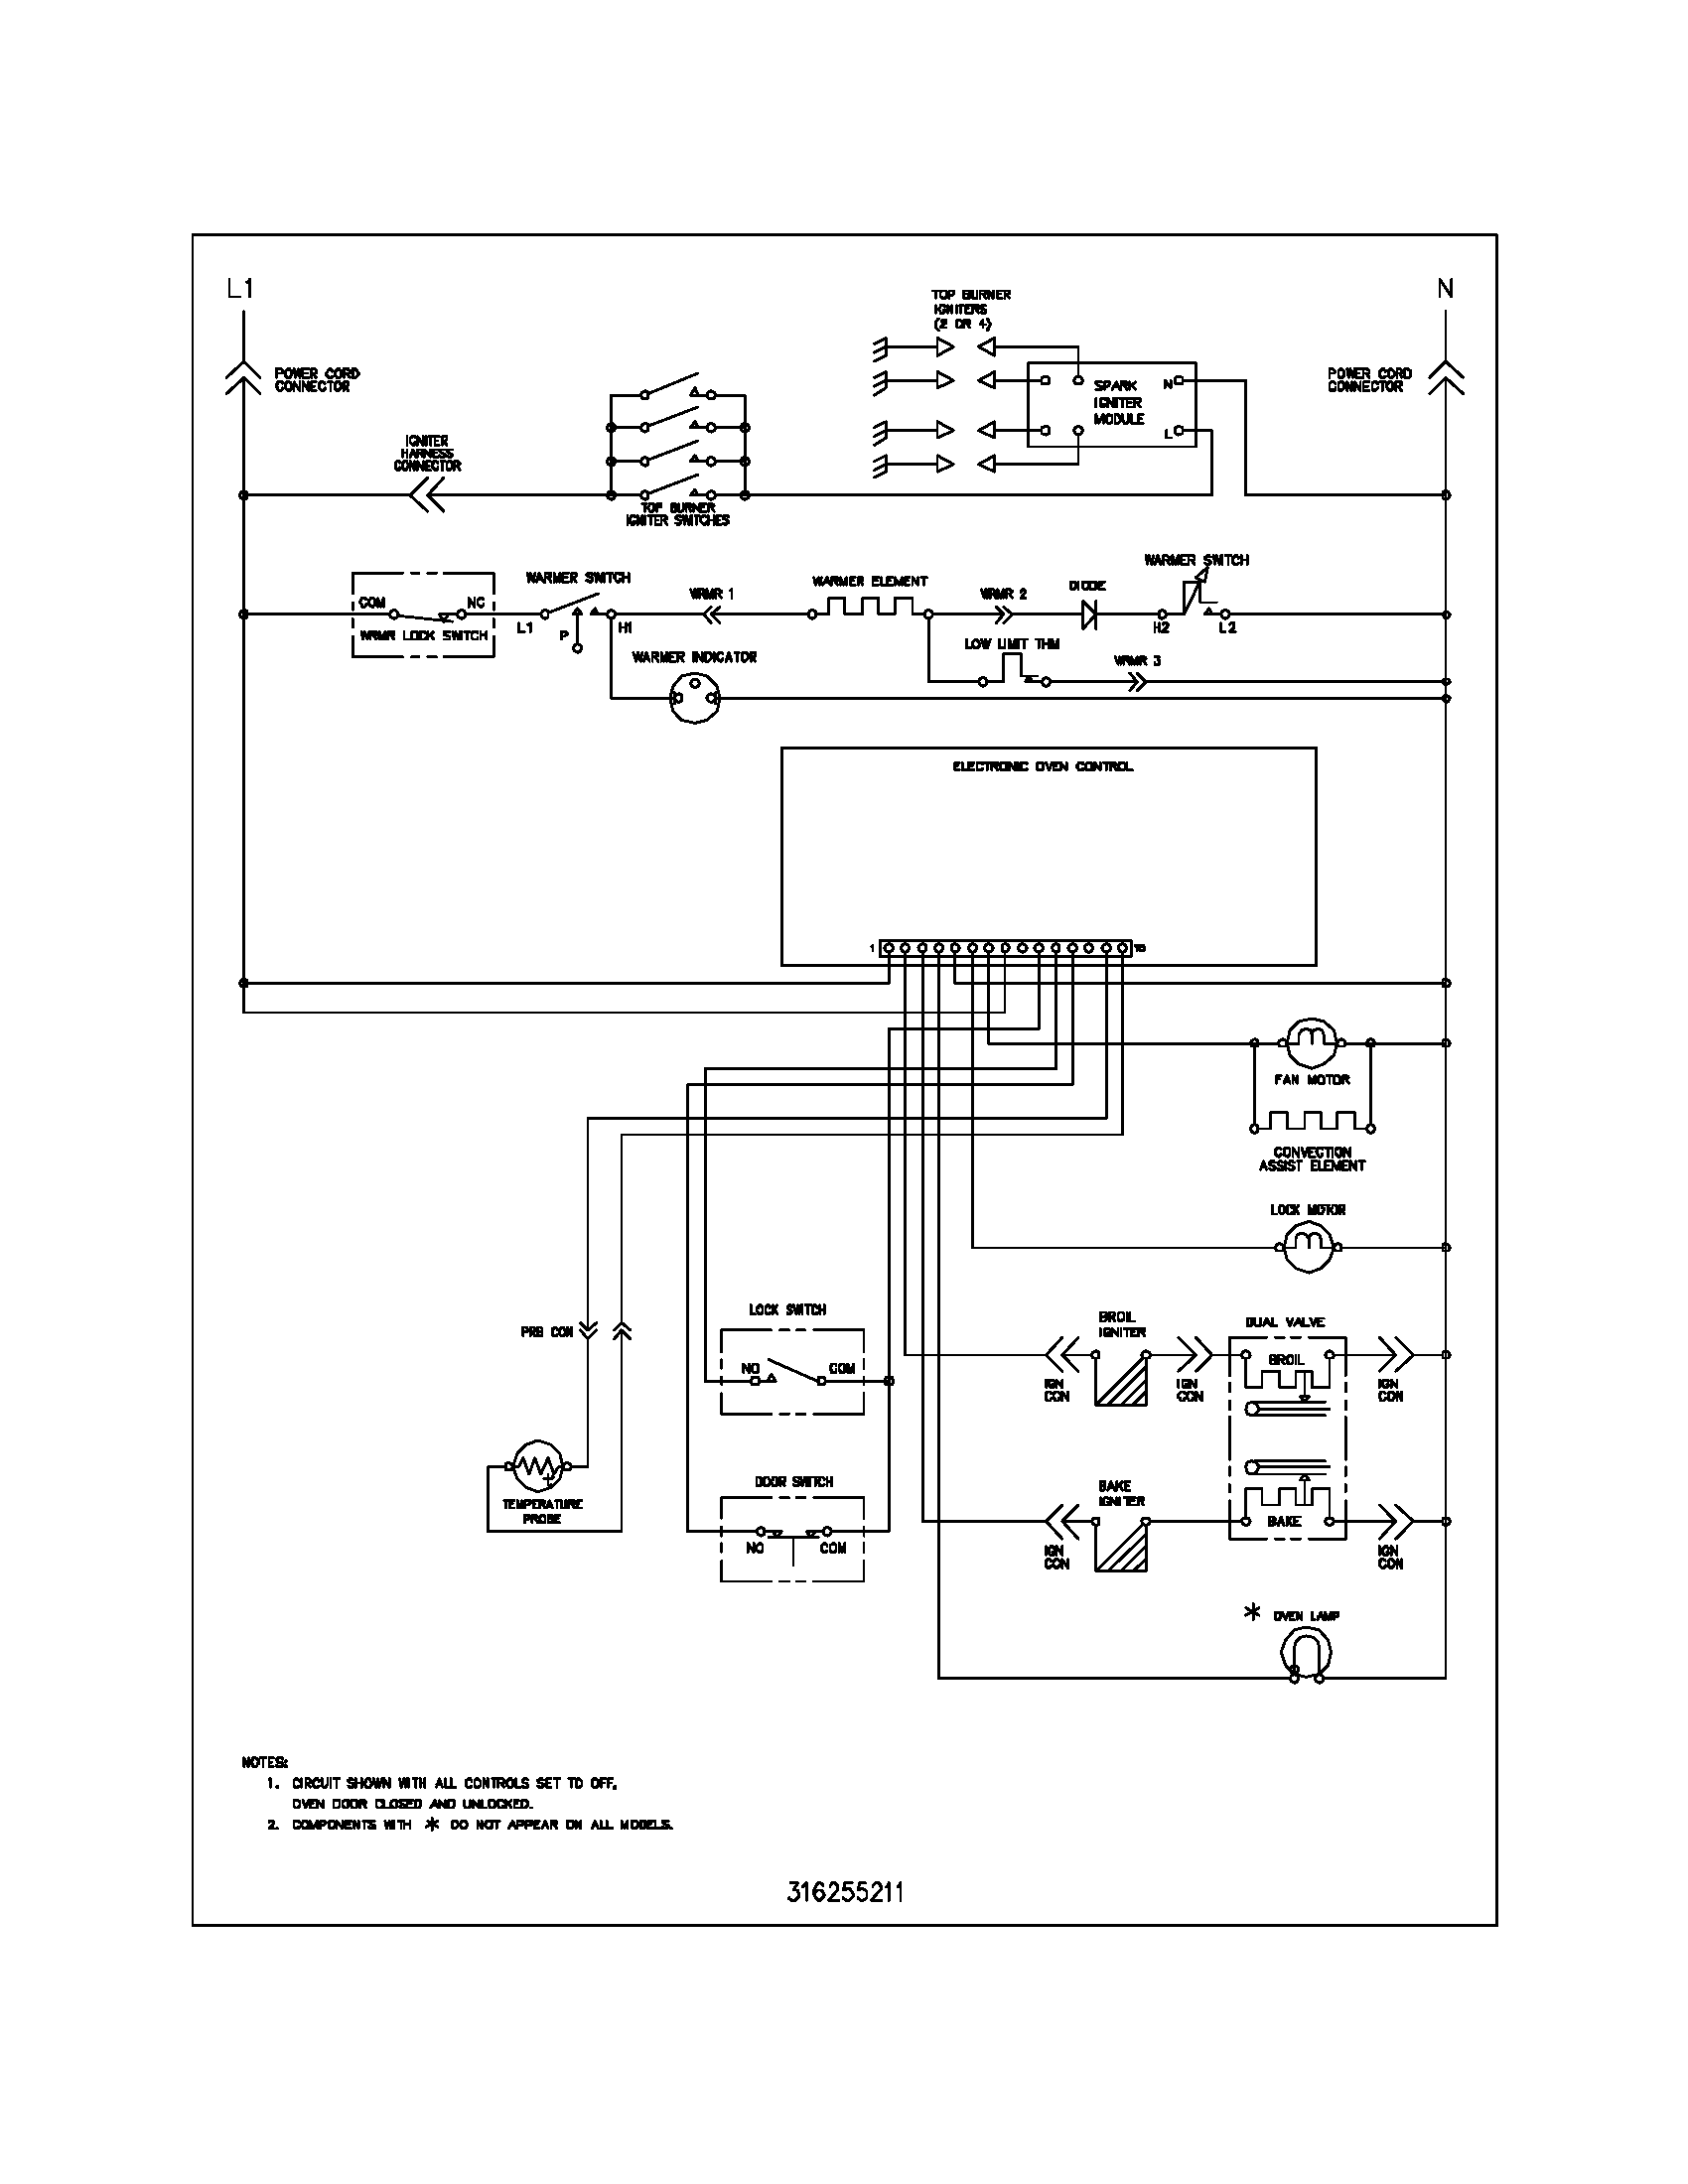 Frigidaire Gas Stove Wiring Diagram Moreover Electric Further Microwave Oven Old 3 Way Plgf389ccc Range Timer Clocks And Appliance